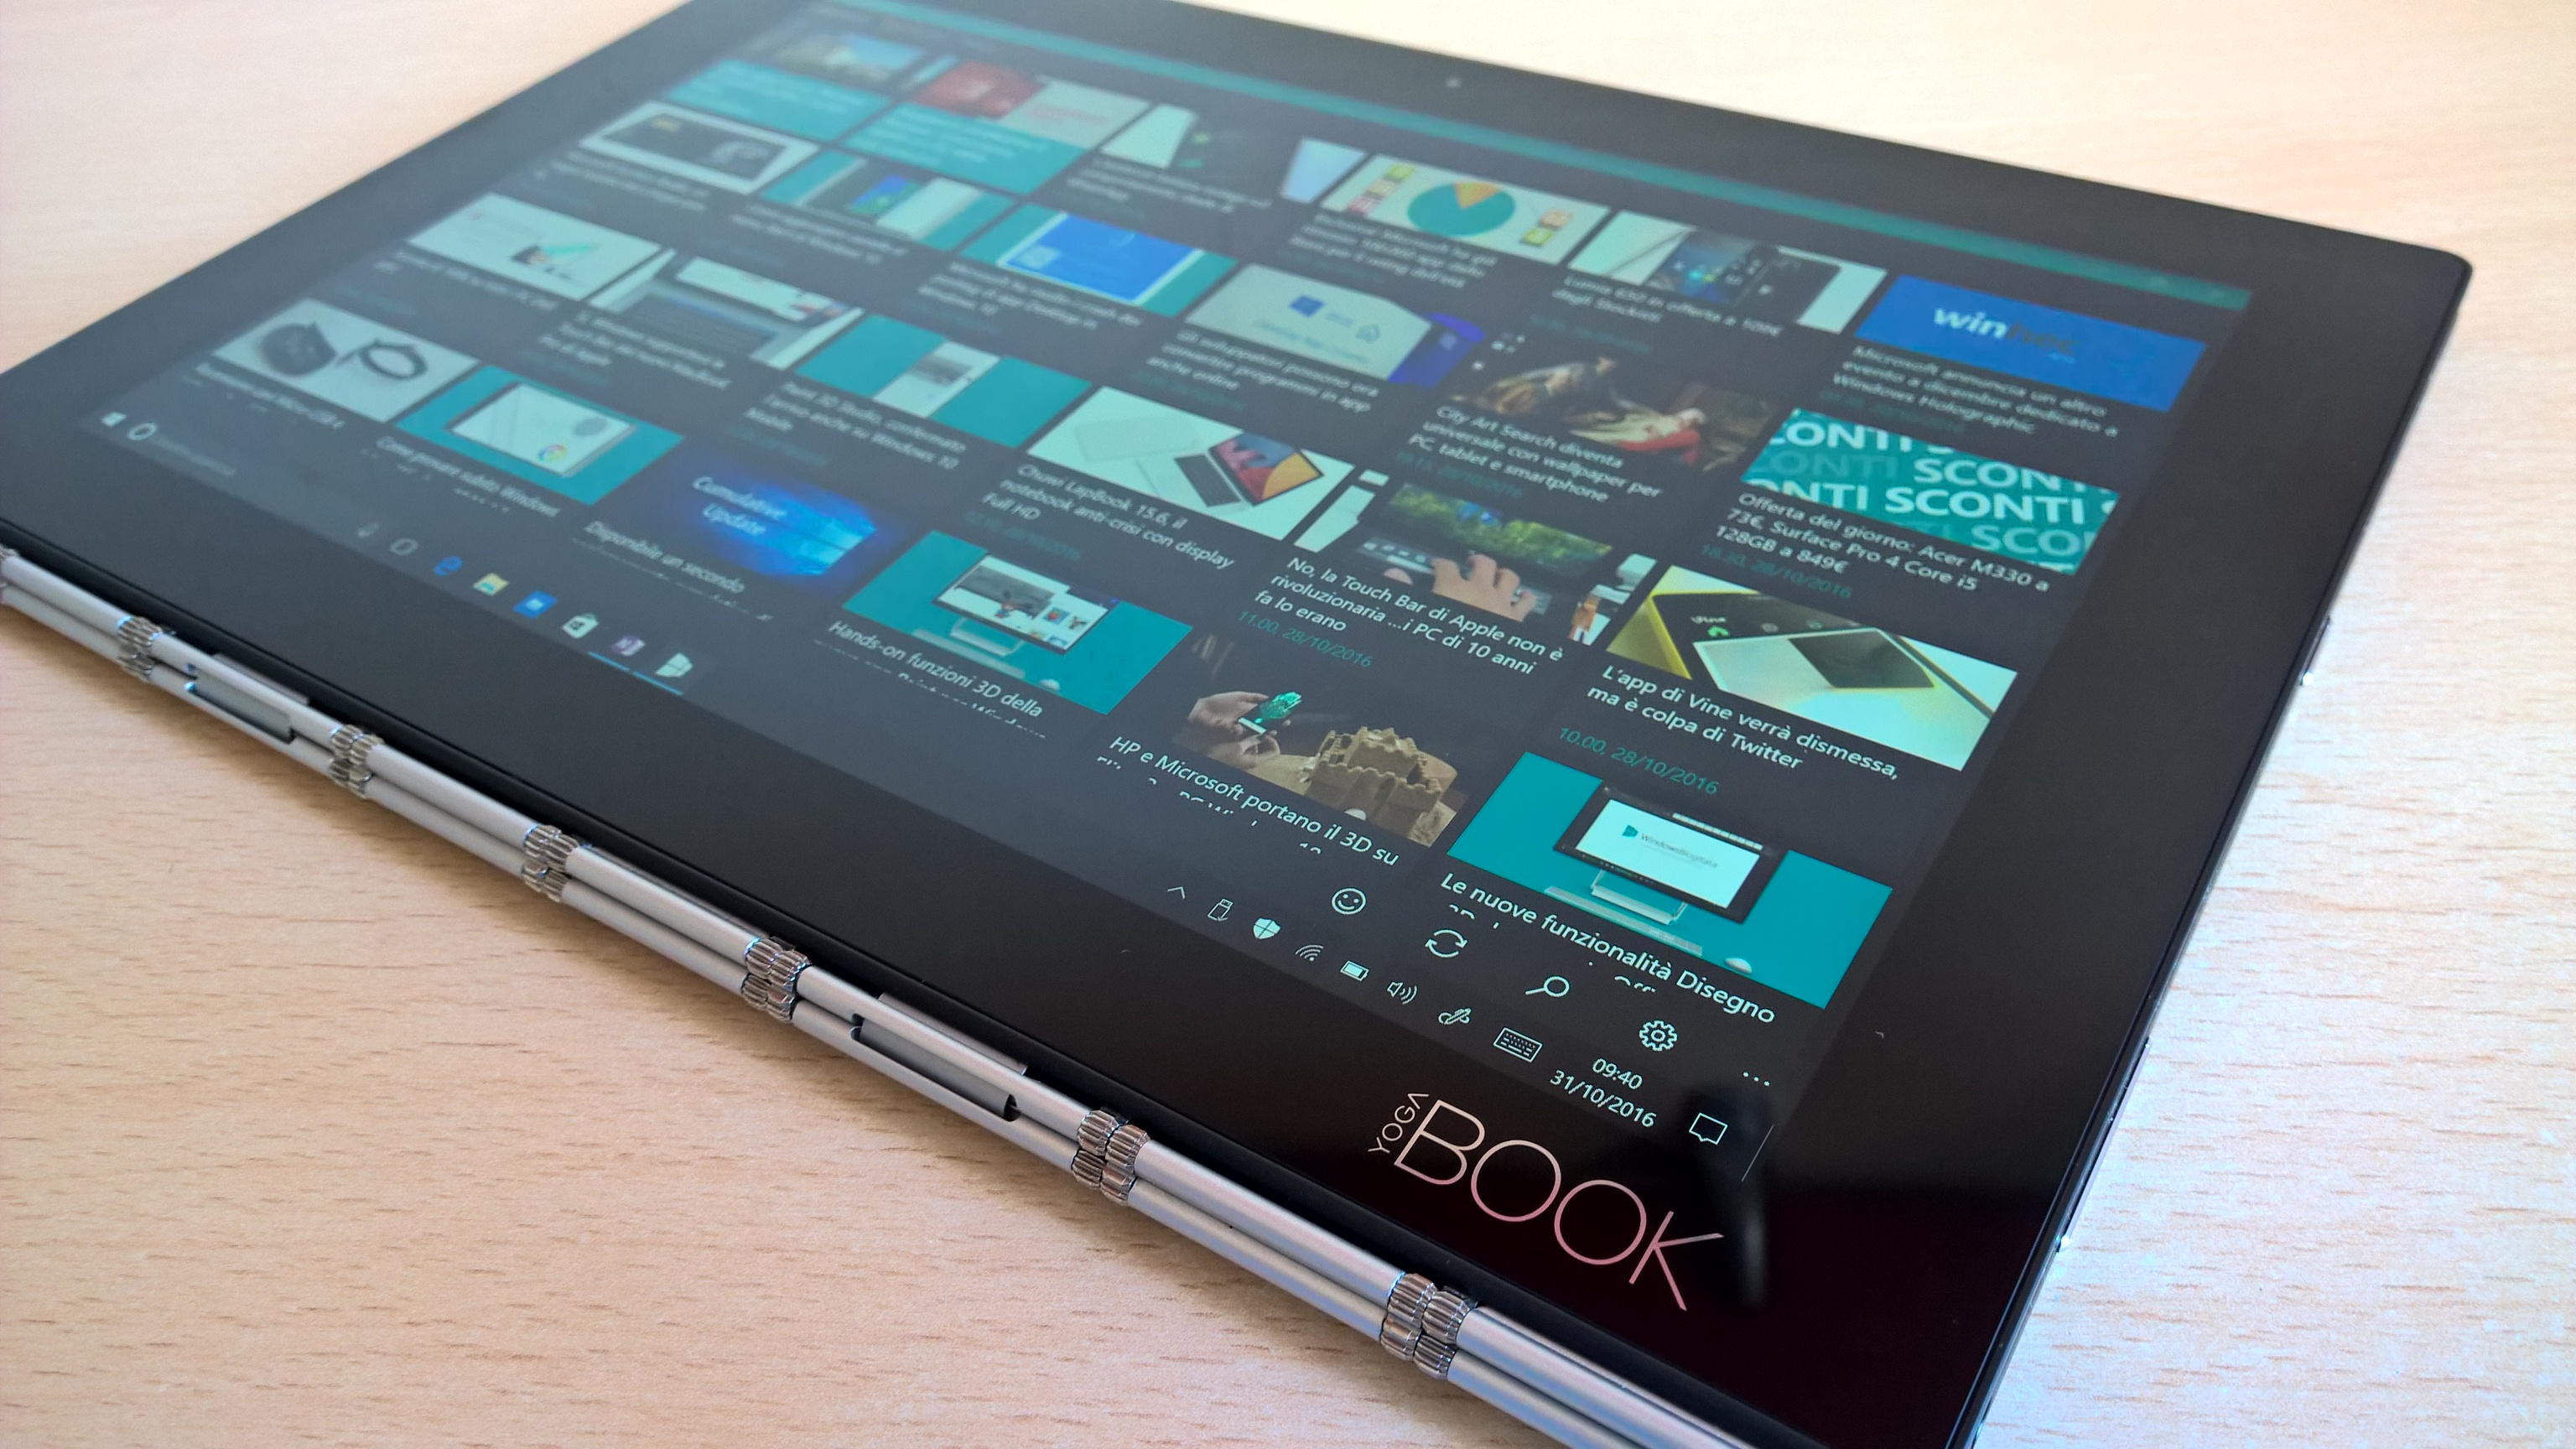 lenovo-yoga-book-display-1